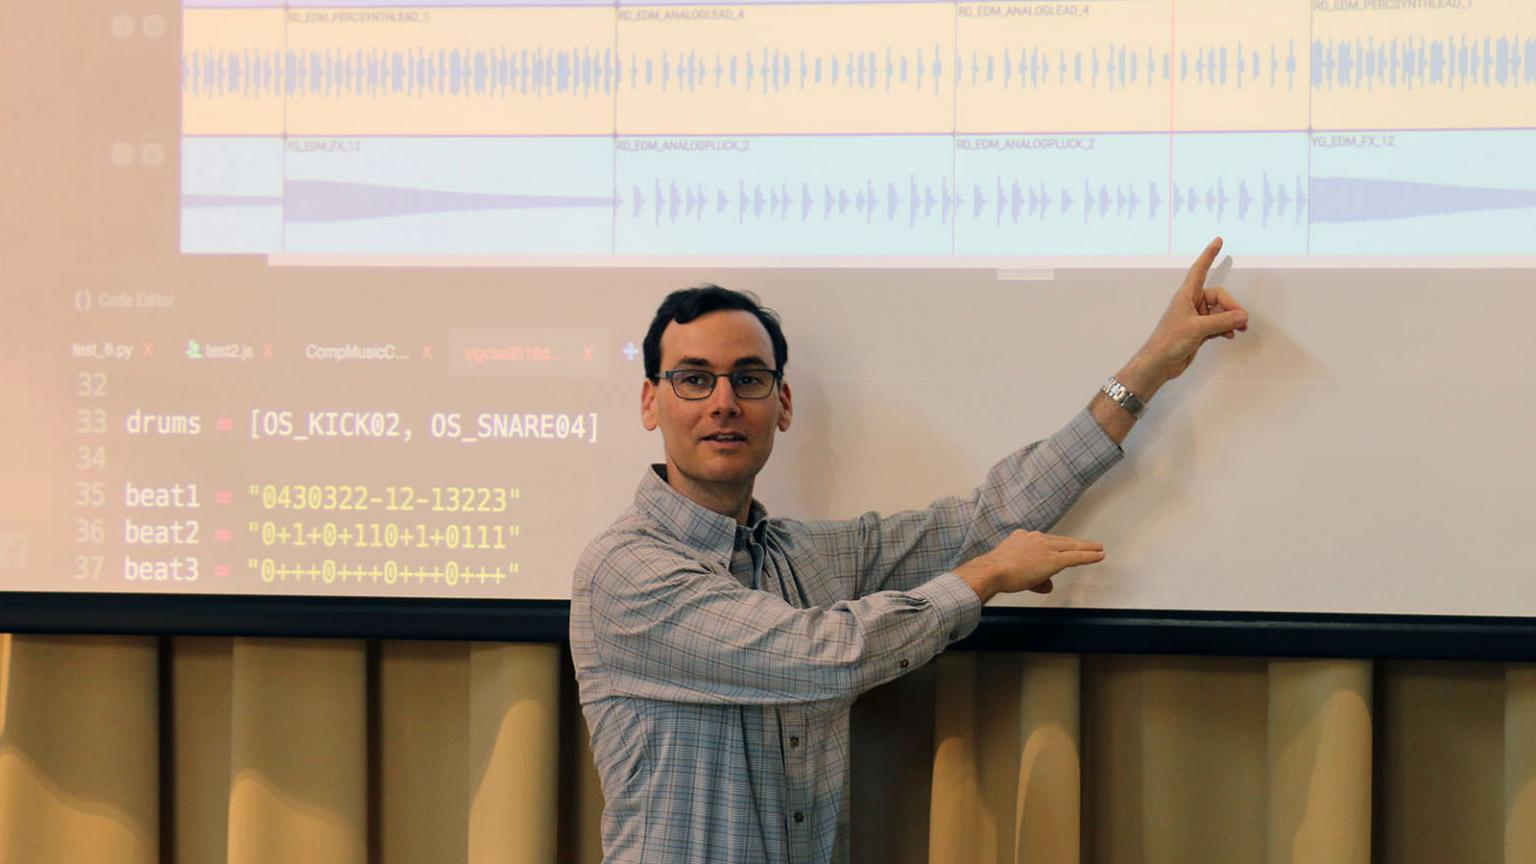 Jason Freeman teaching in front of a projector screen showing lines of code.